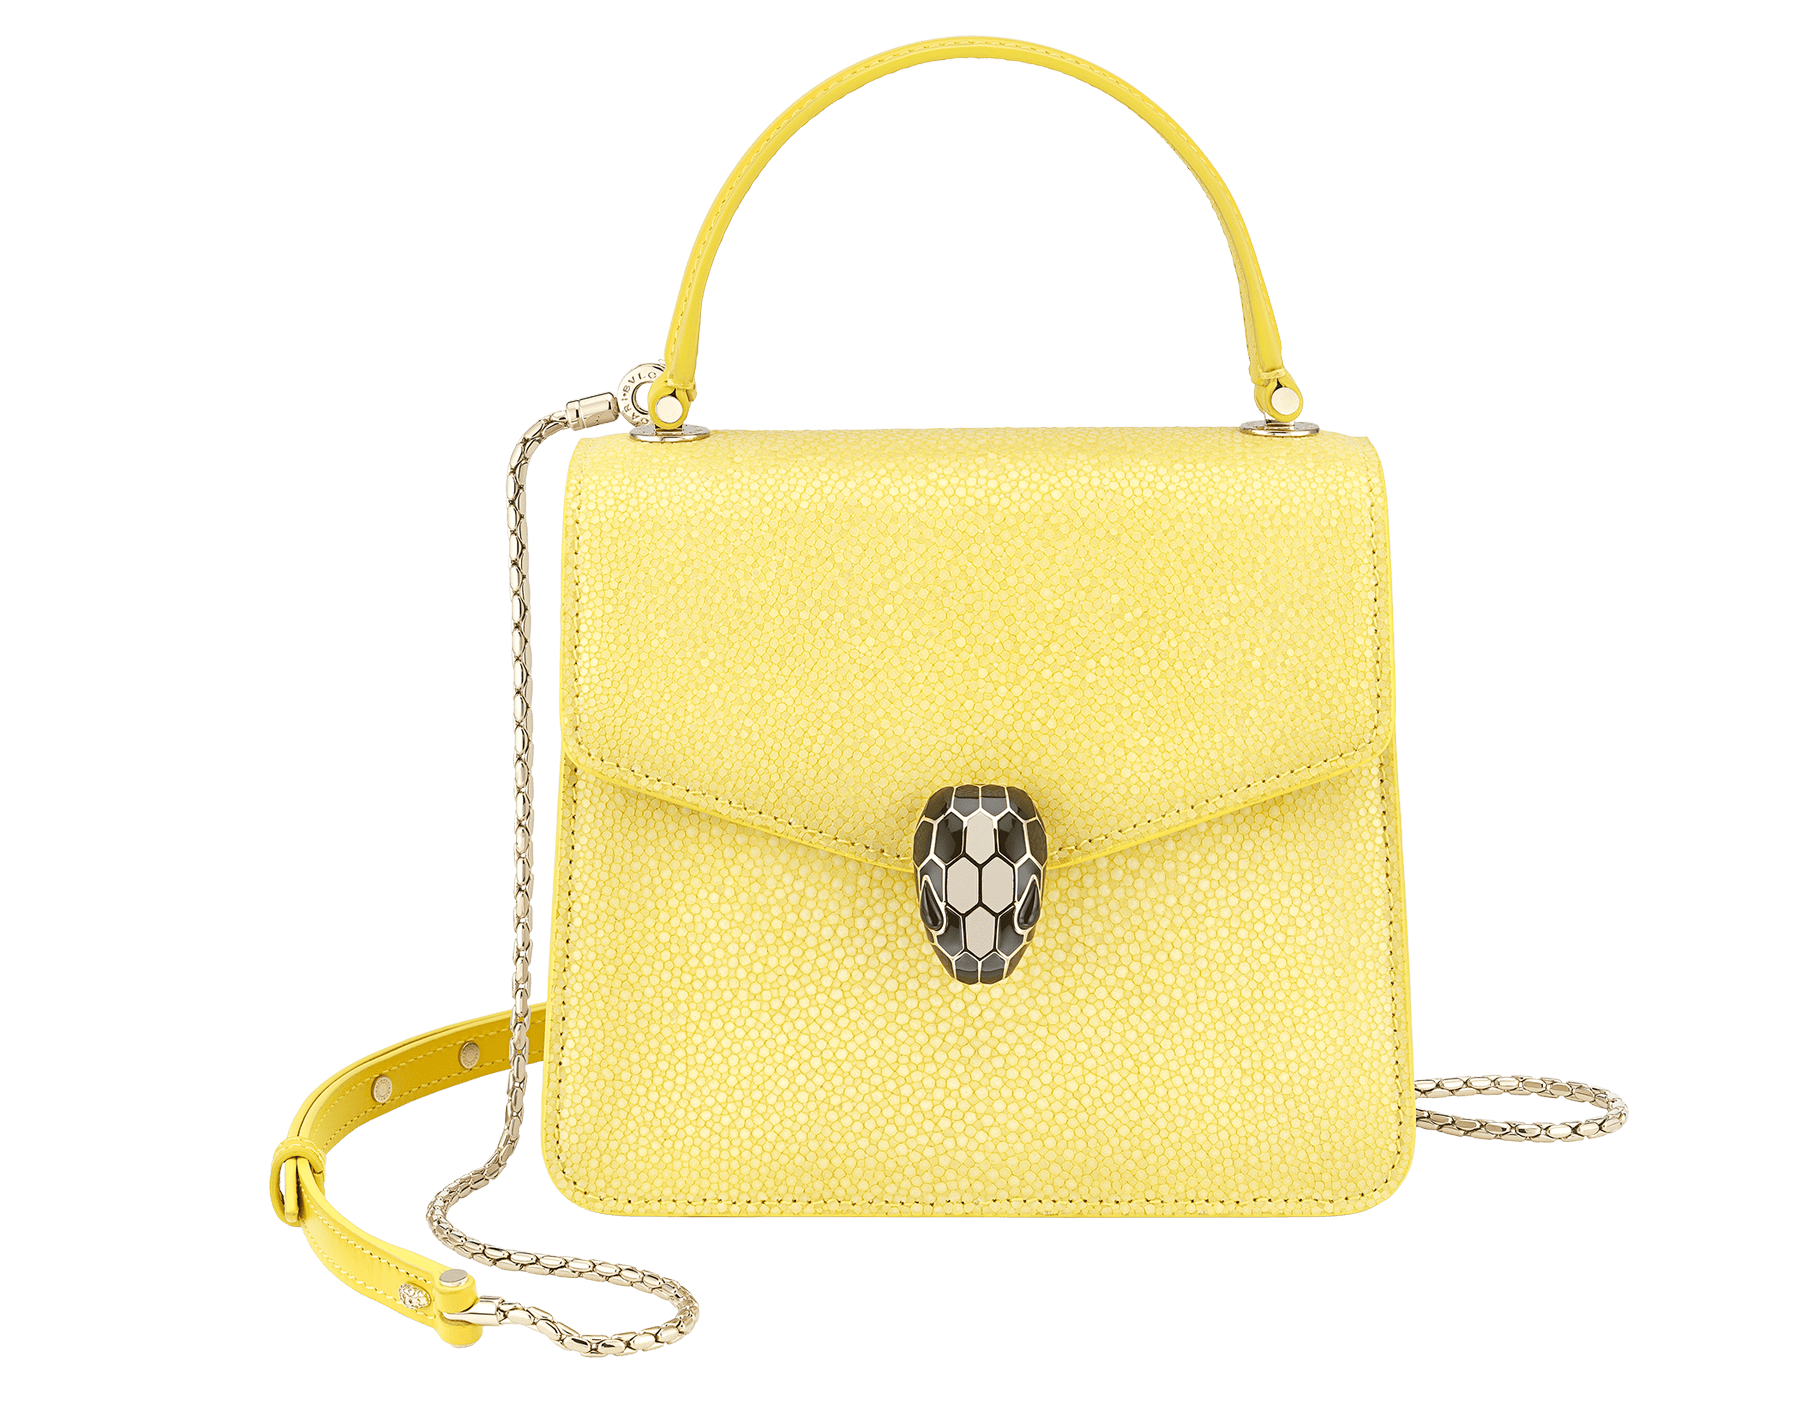 """Serpenti Forever "" crossbody bag in daisy topaz full galuchat skin body and daisy topaz calf leather sides. Iconic snakehead closure in light gold plated brass enriched with black and white enamel and black onyx eyes. 752-FG image 1"